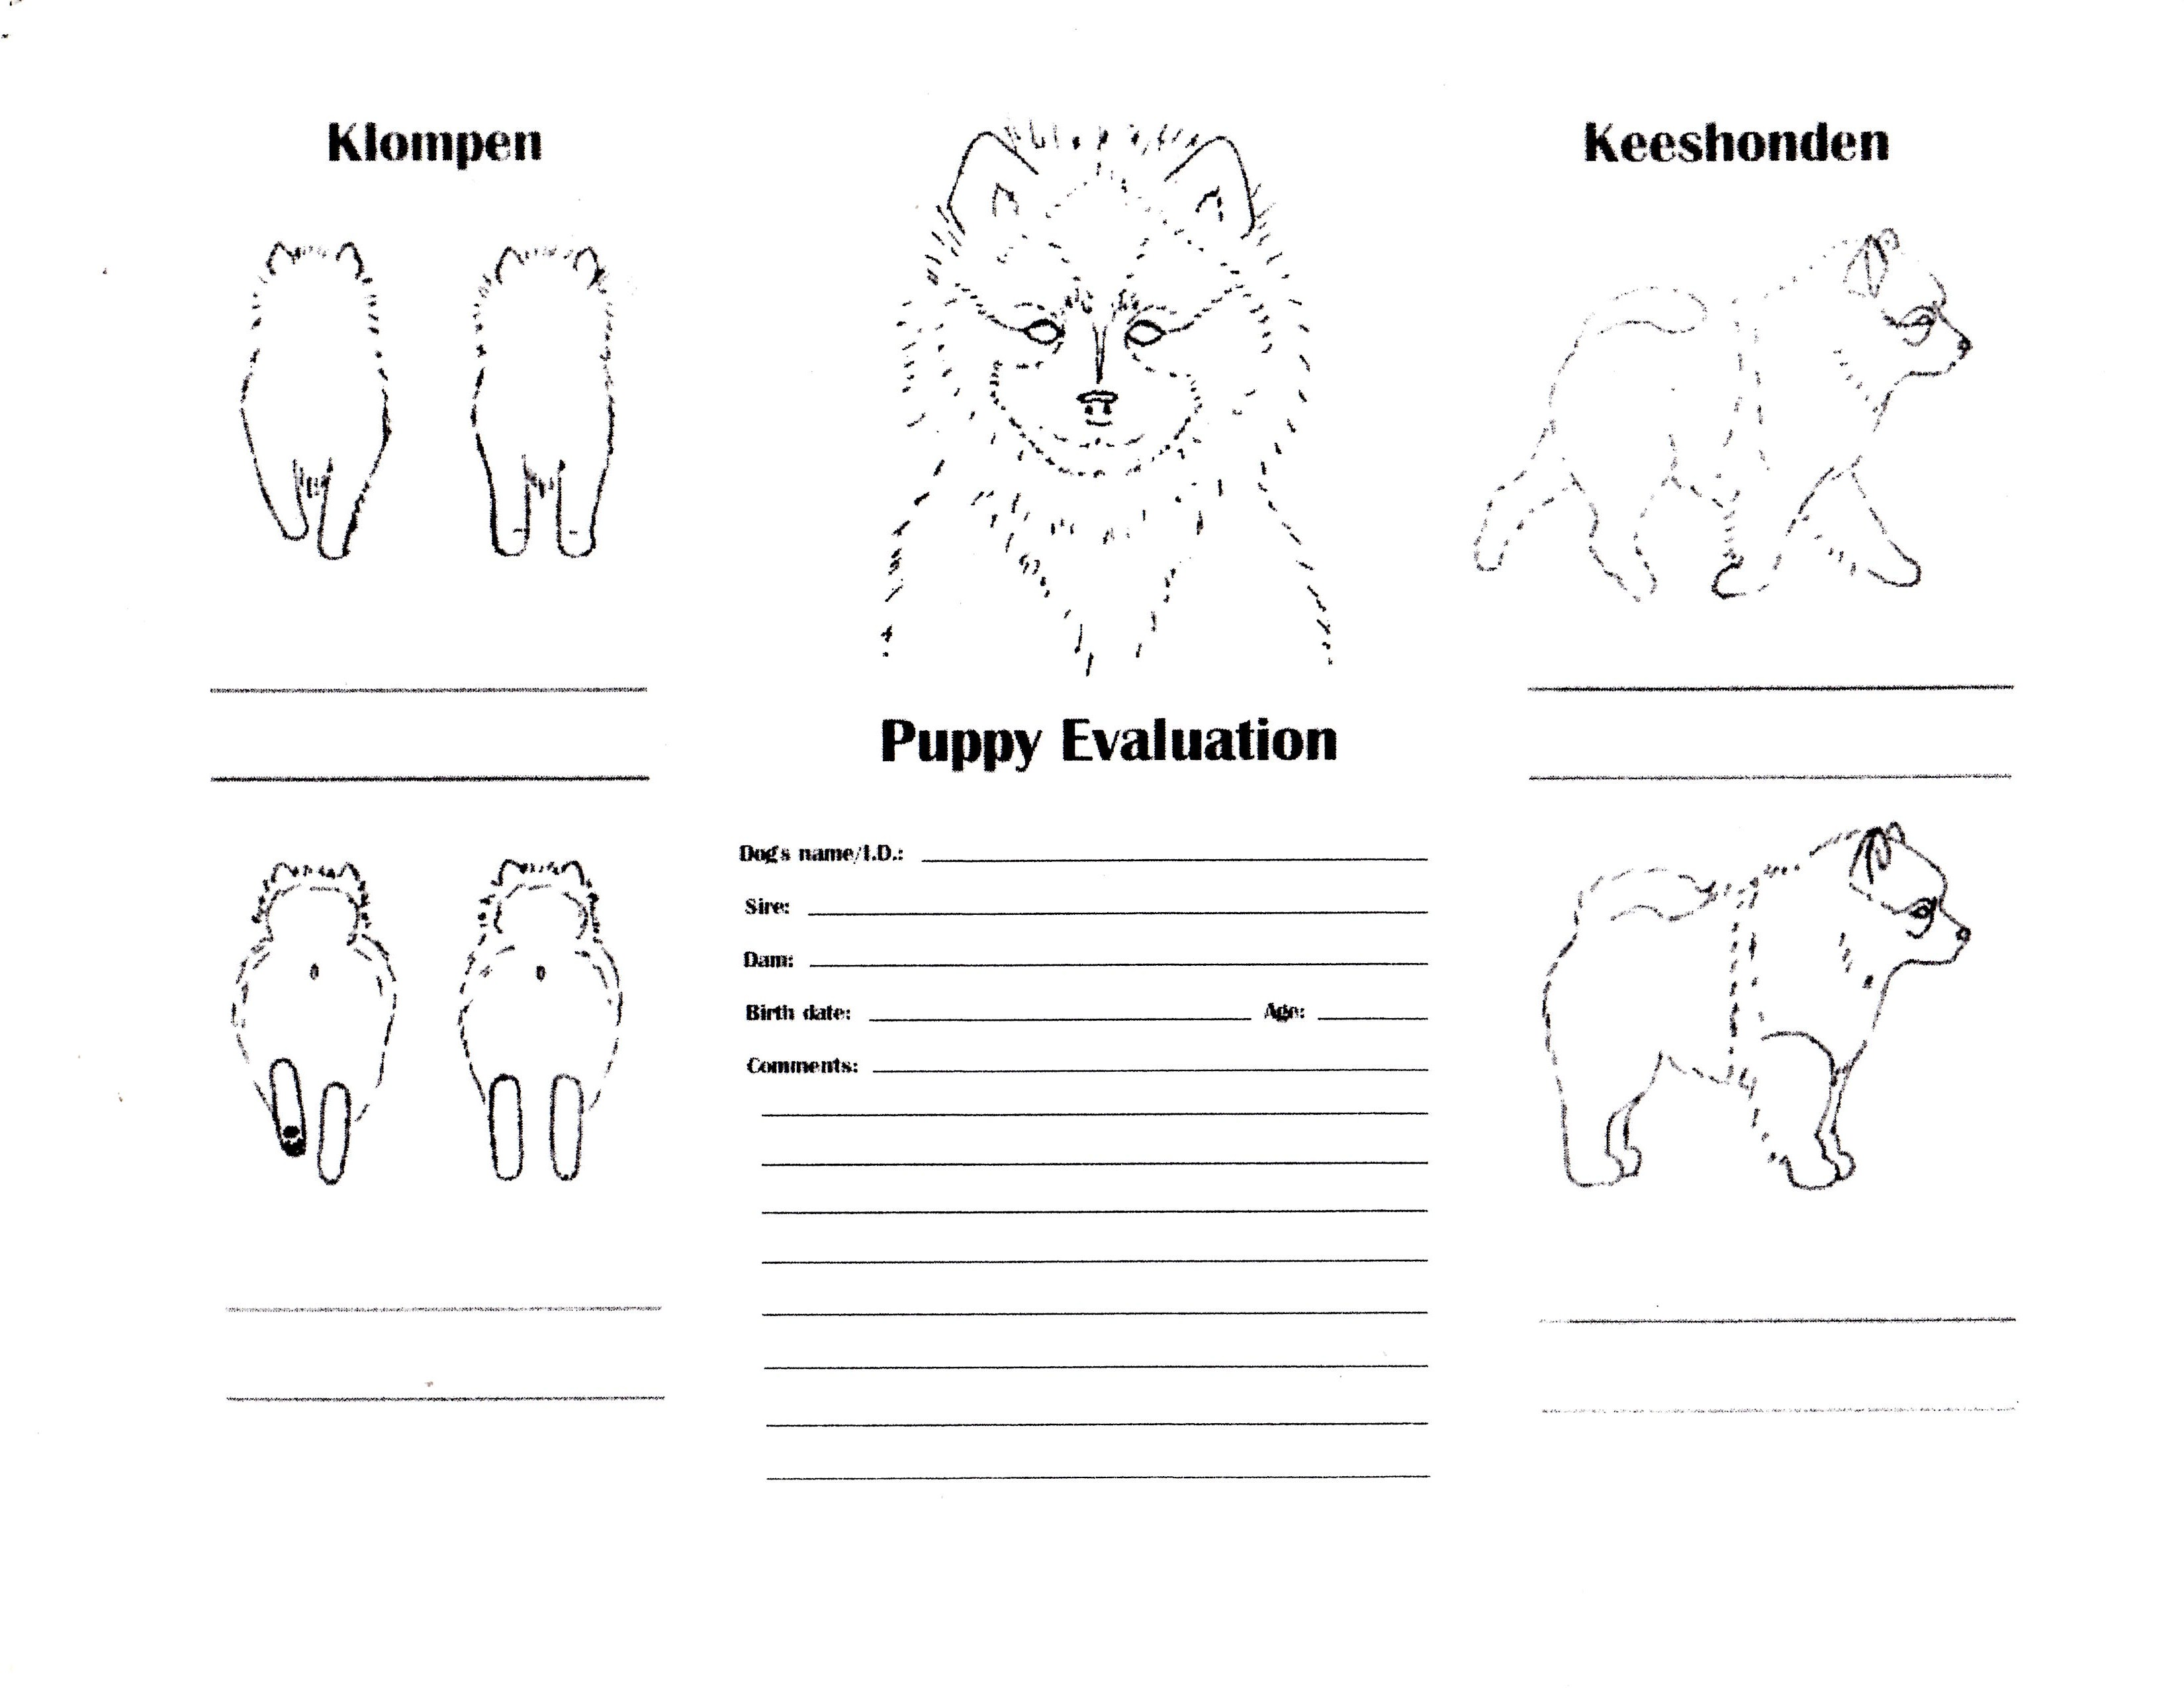 Puppy Evaluation page 1